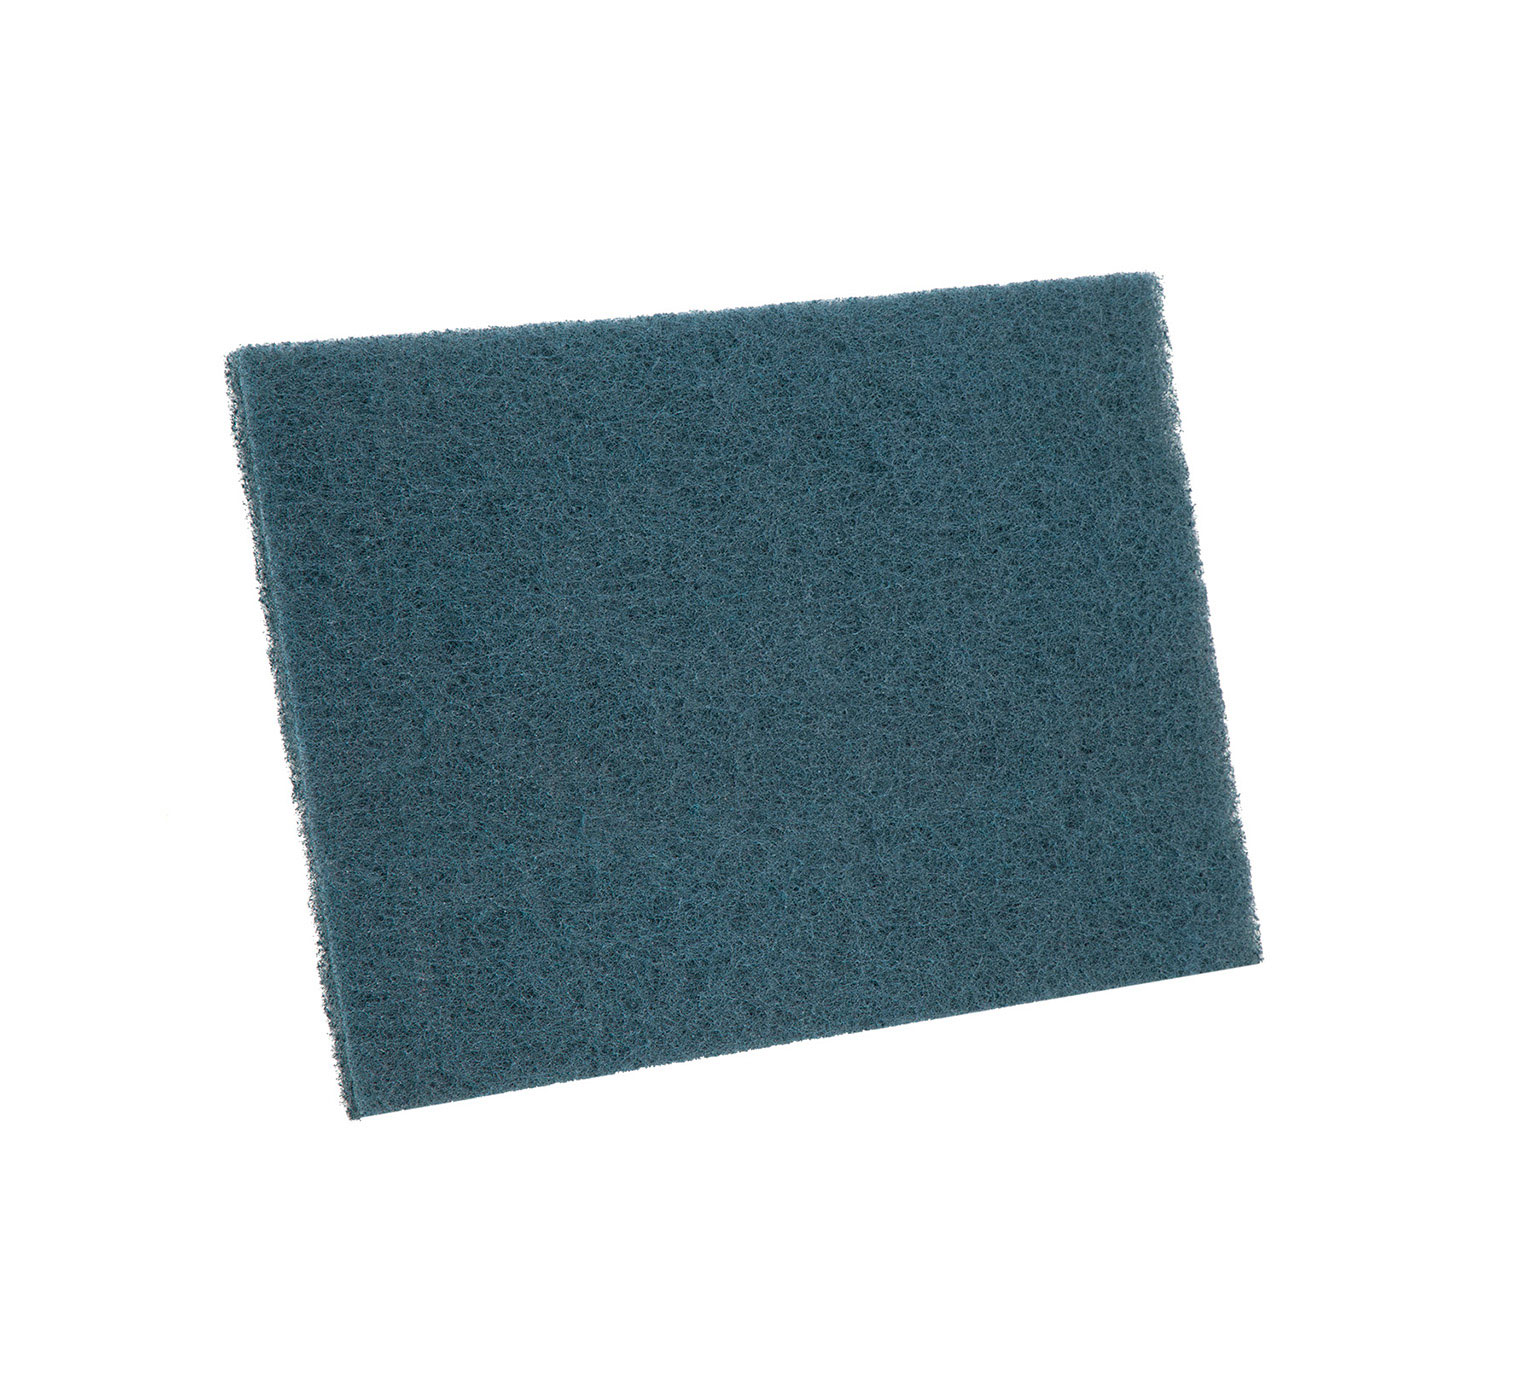 1205514 3M Blue Scrubbing Pad – 20 in / 508 mm alt 1